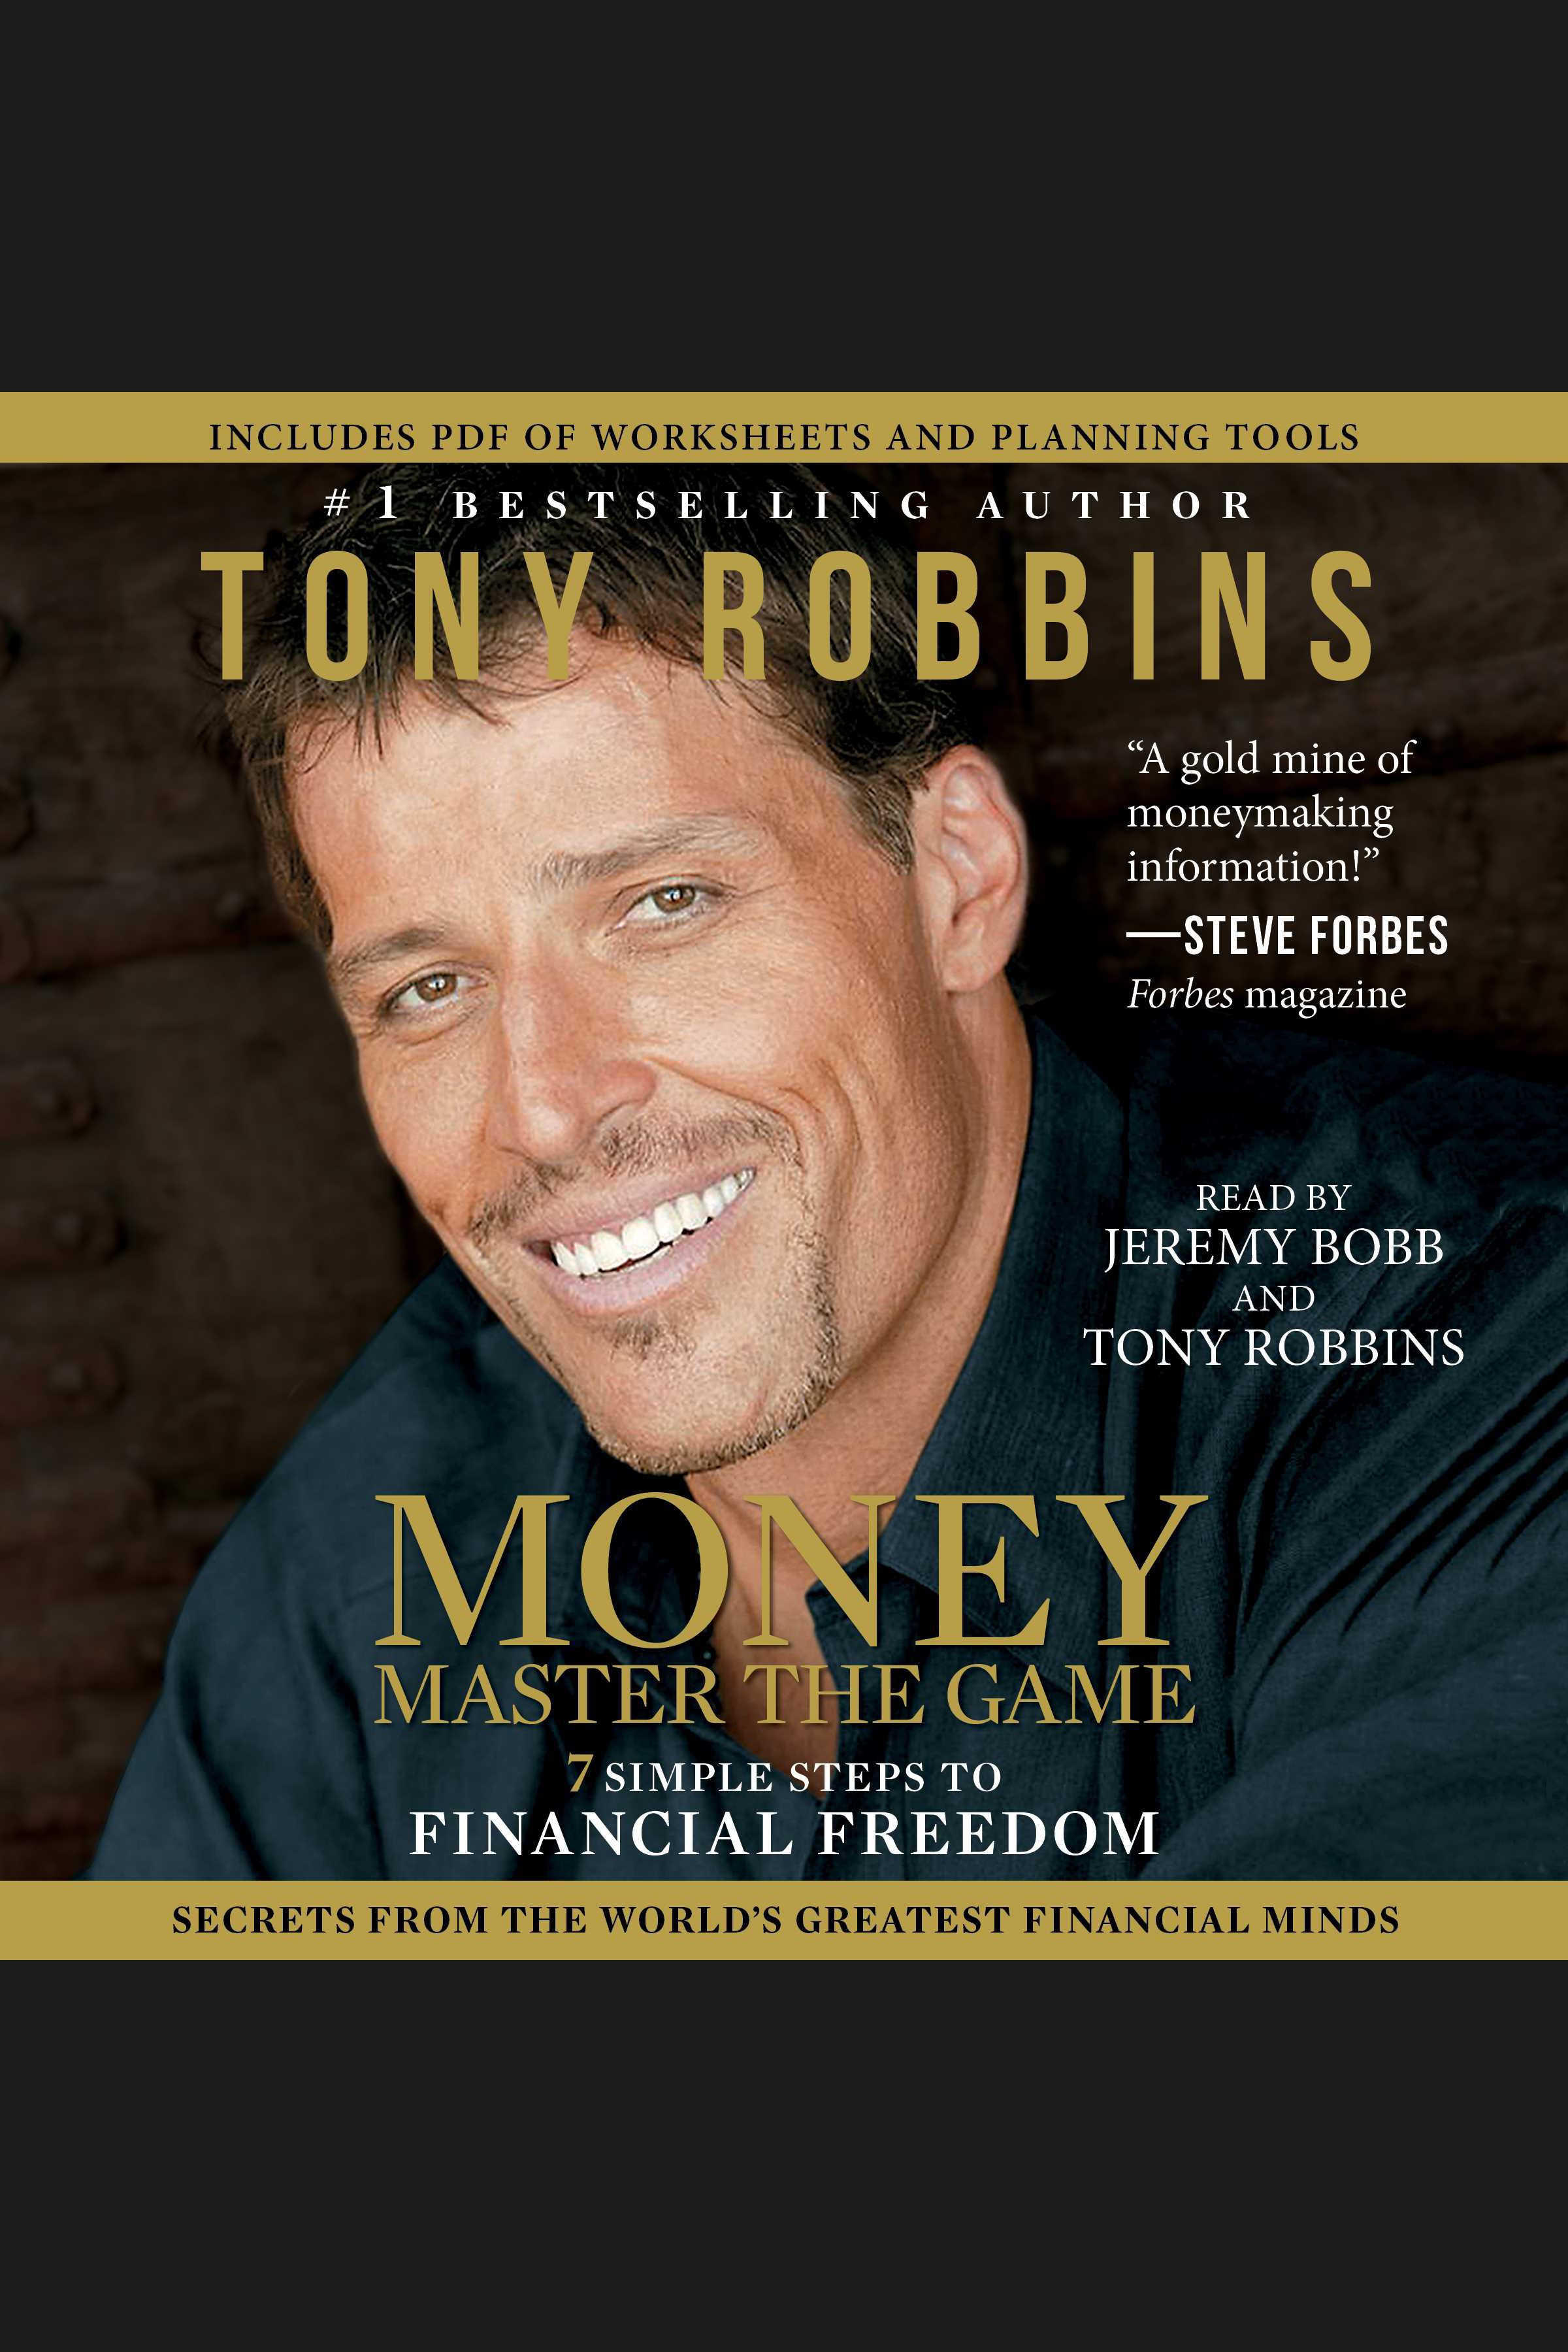 Money master the game : 7 simple steps to financial freedom cover image